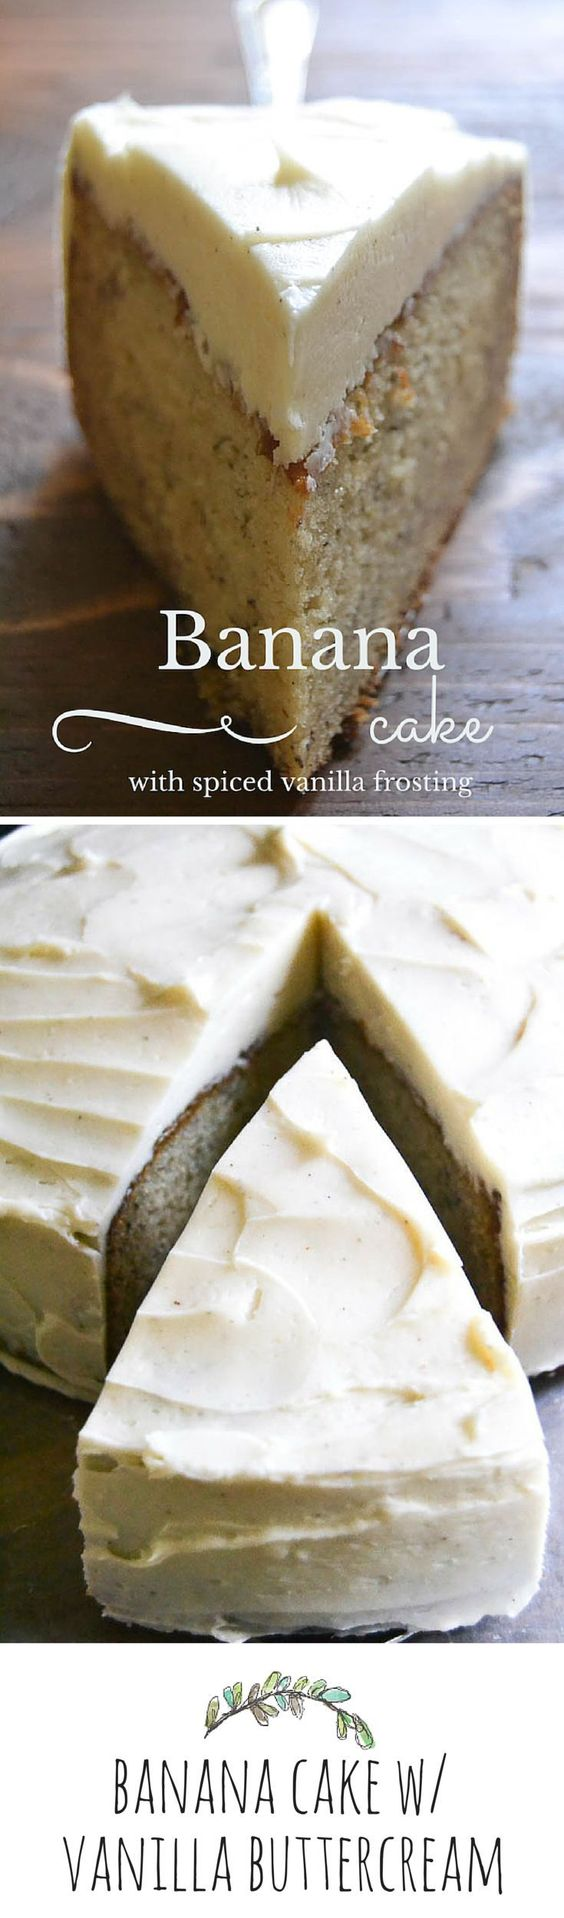 Banana Cake with Spiced Vanilla Buttercream - Click through for recipe!